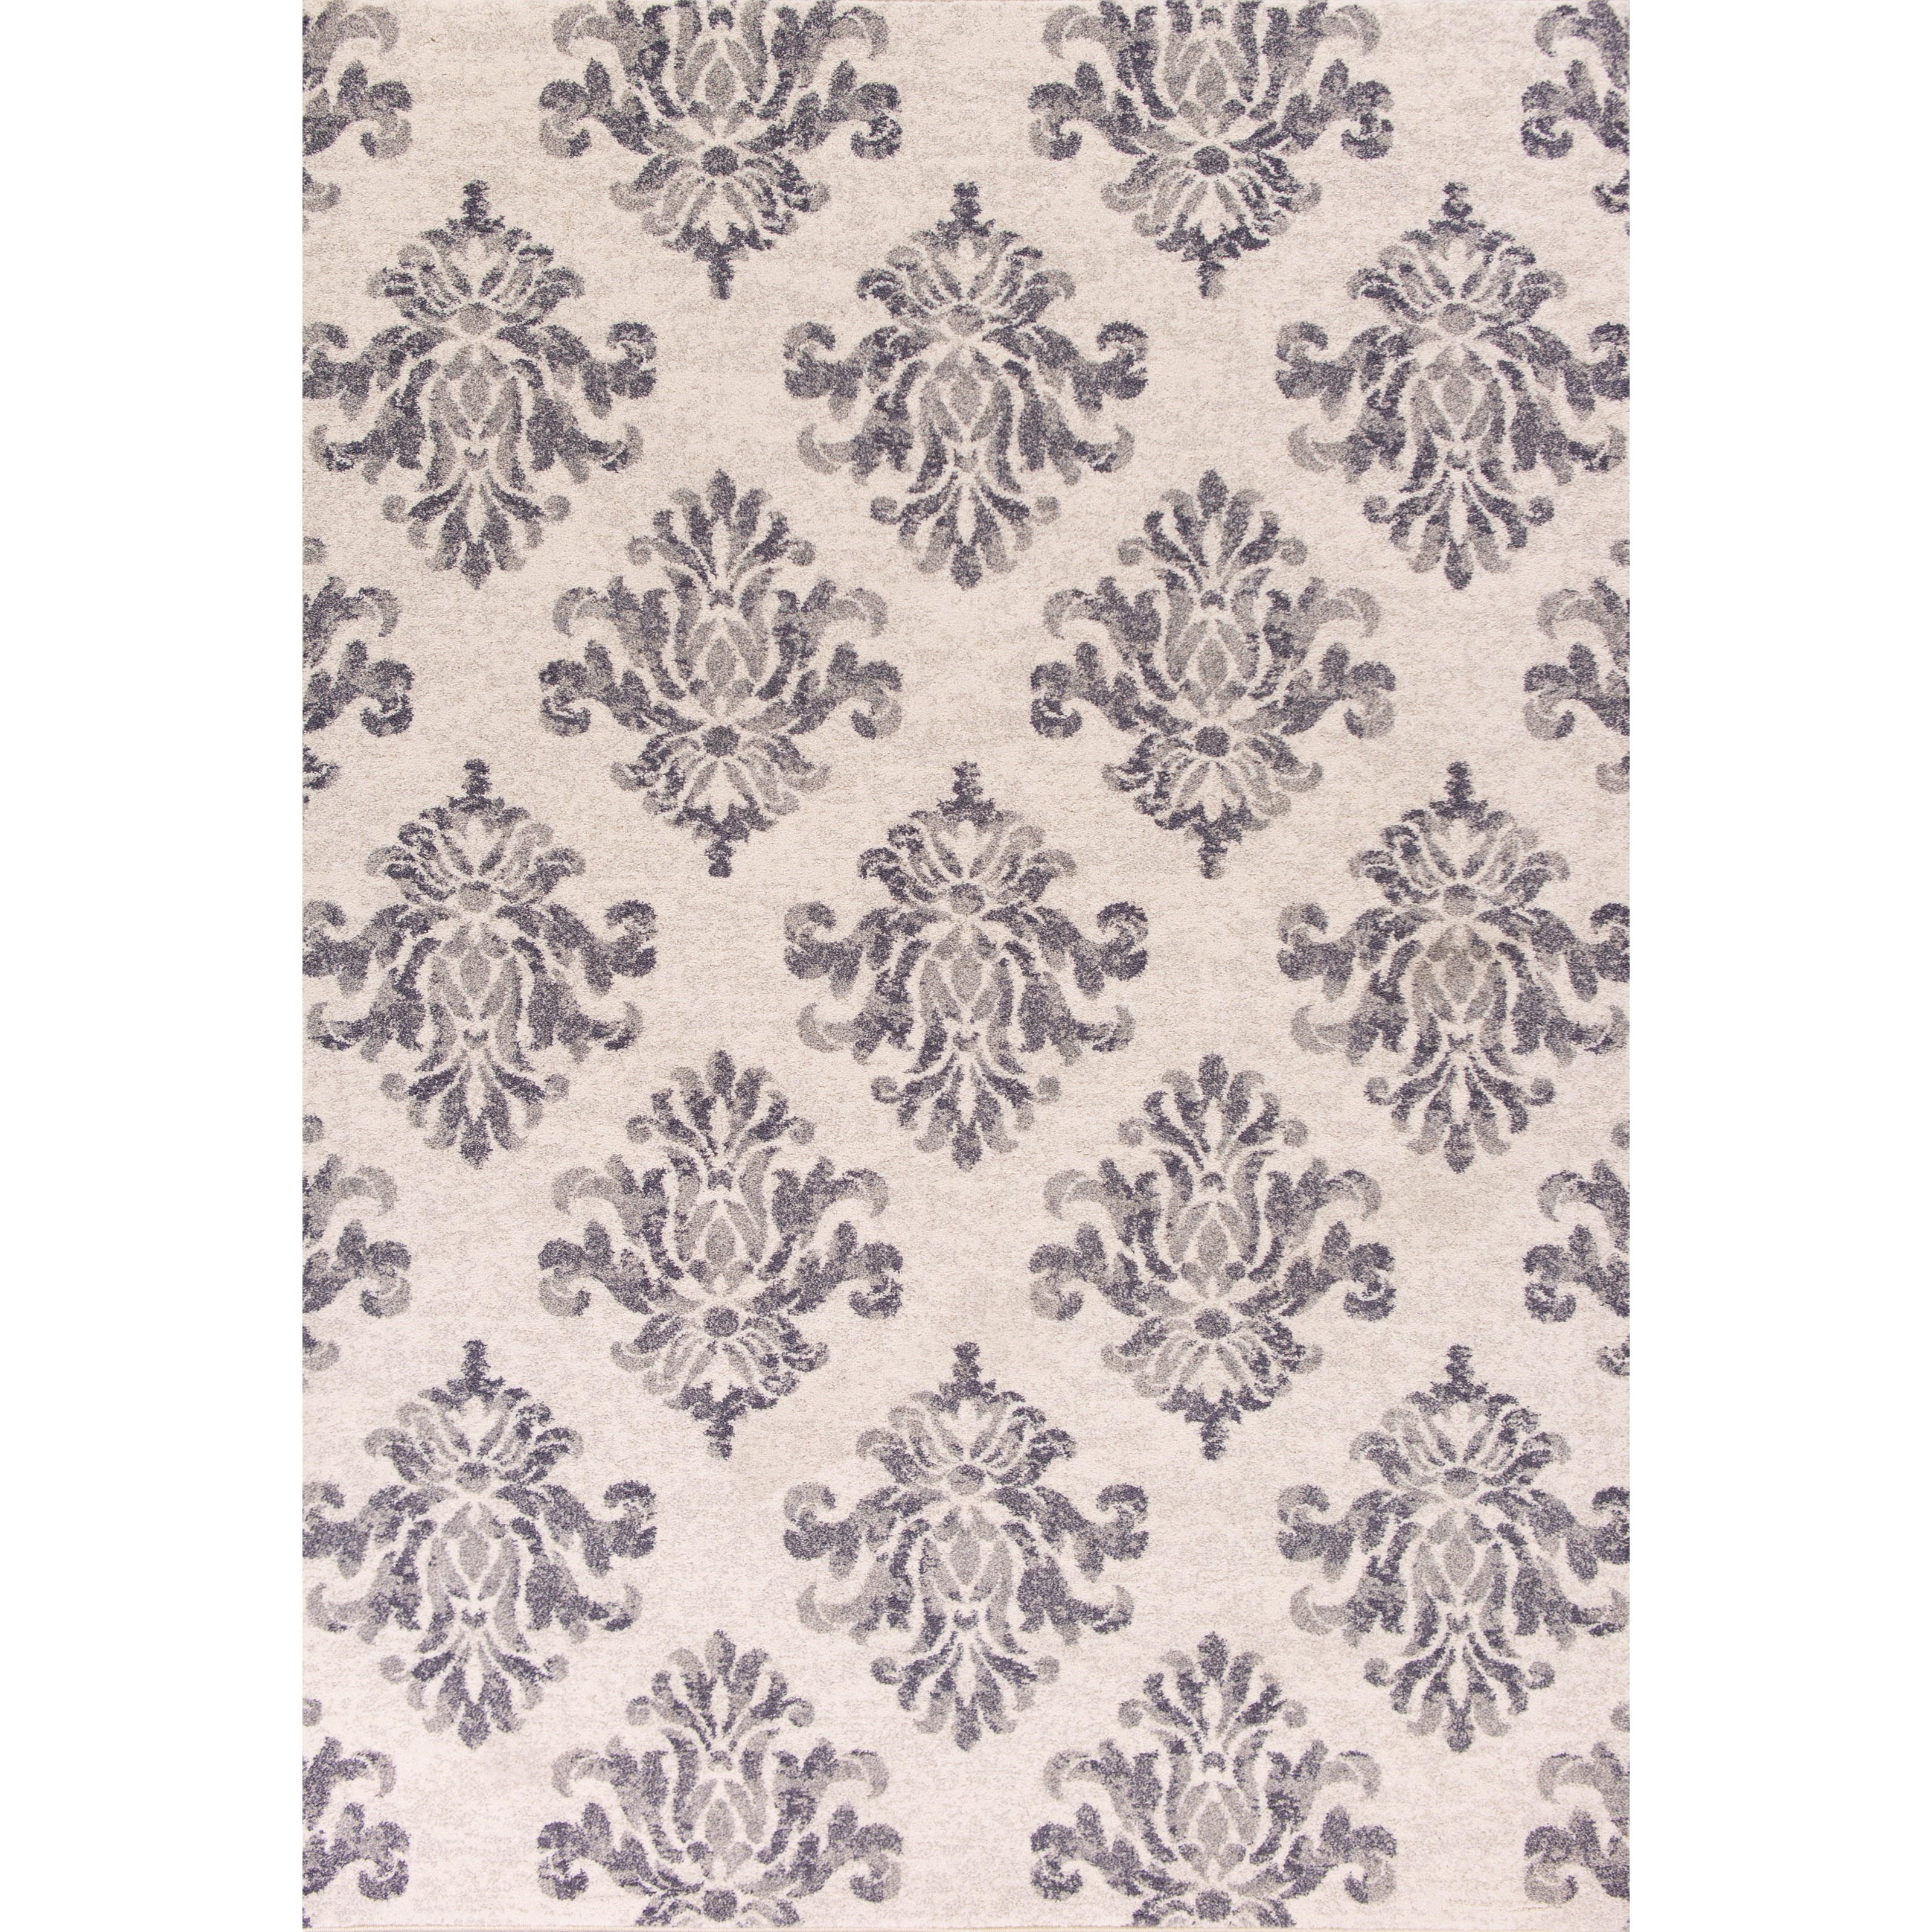 """Reflections 7'10"""" X 11'2"""" Grey Damask Area Rug by Kas at Wilson's Furniture"""